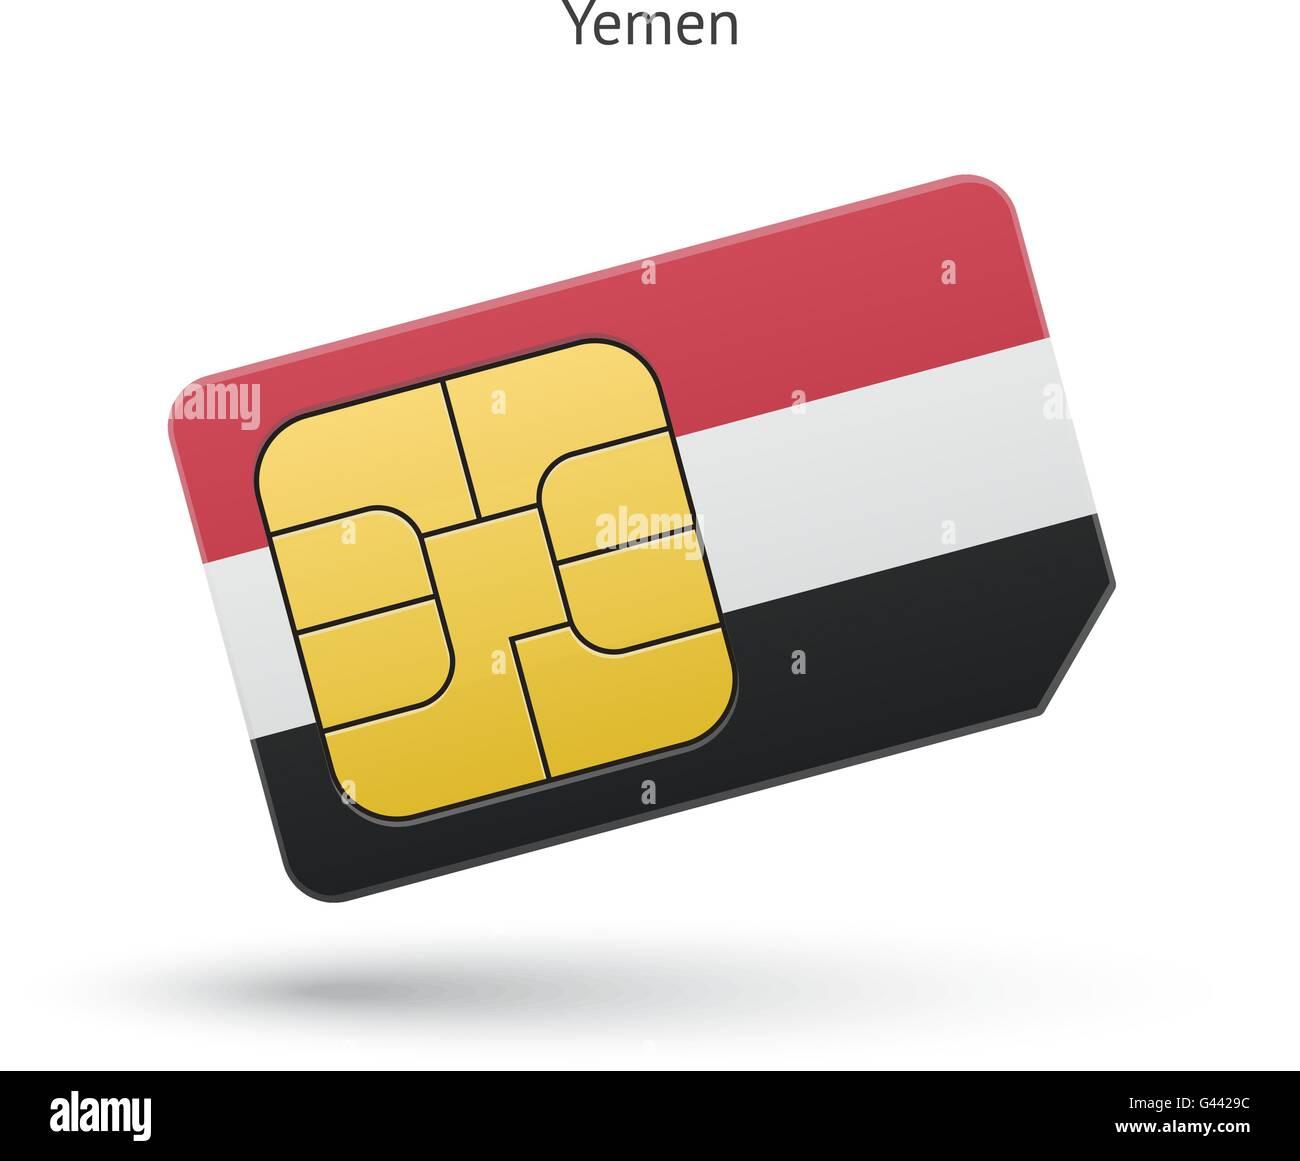 Yemen mobile phone sim card with flag. - Stock Vector